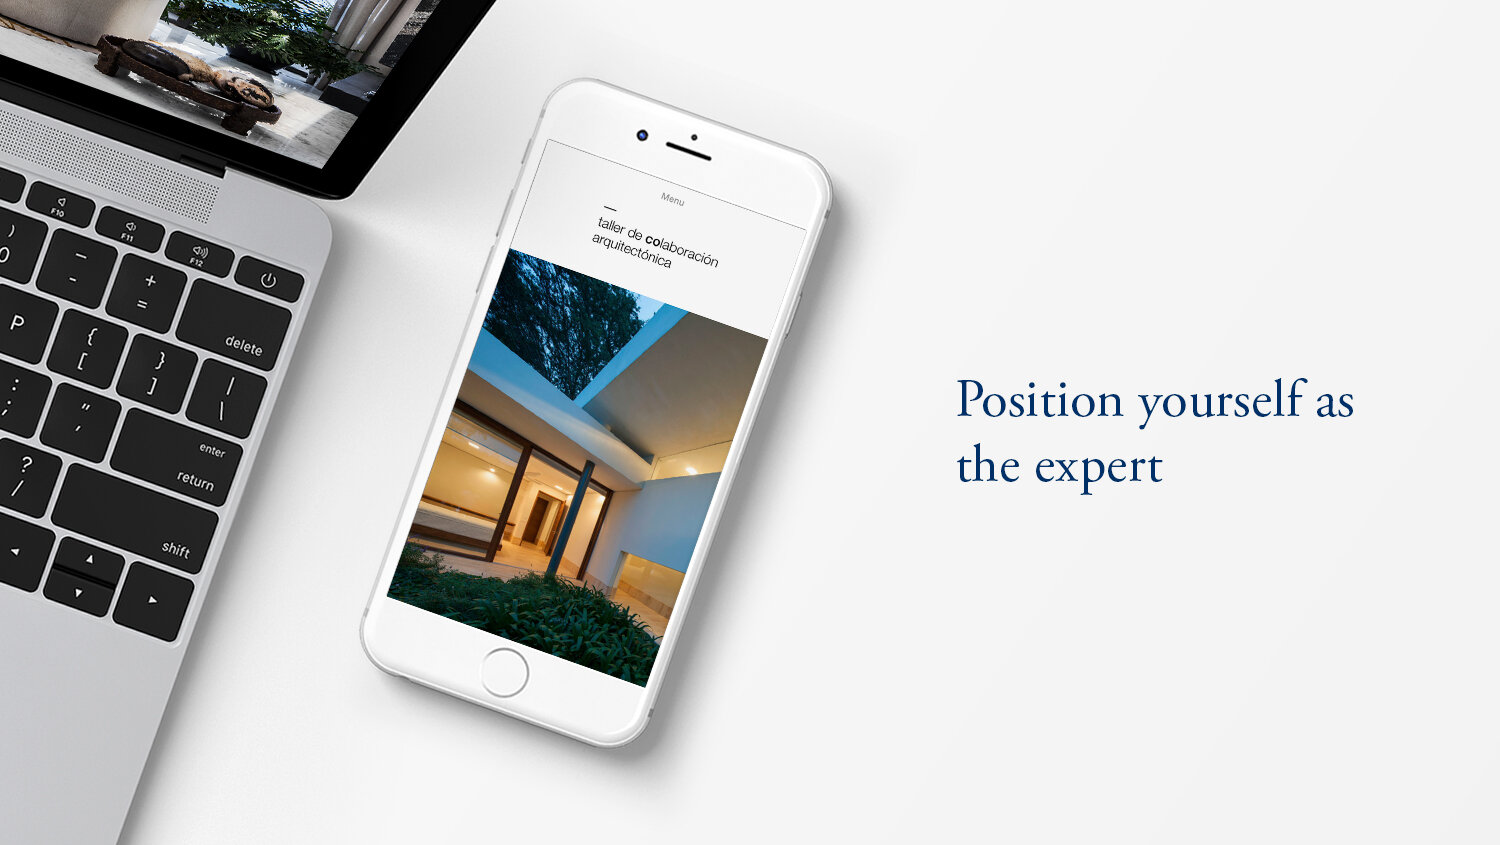 behagen_Marketing-and-branding-for-Architecture-and-Real-Estate.jpg